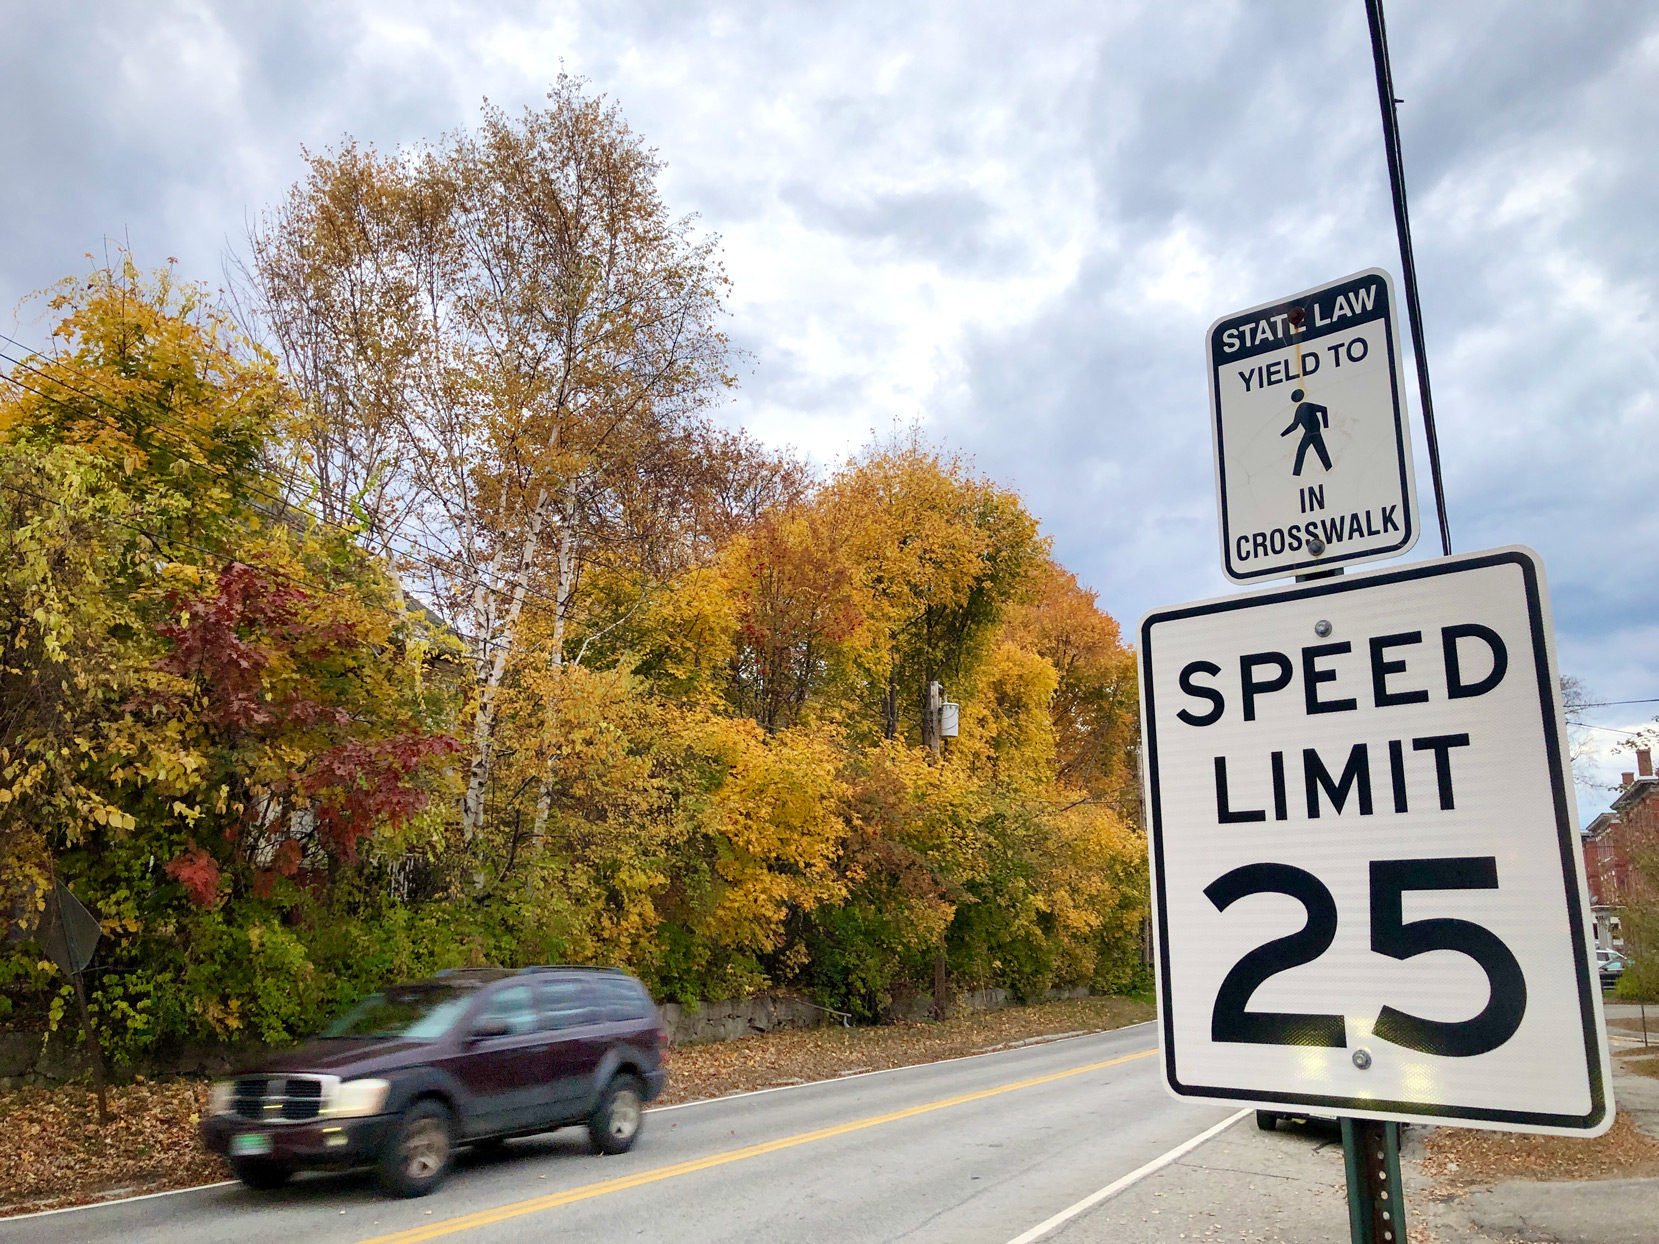 Car driving down a street in Rumford, Maine with speed limit sign